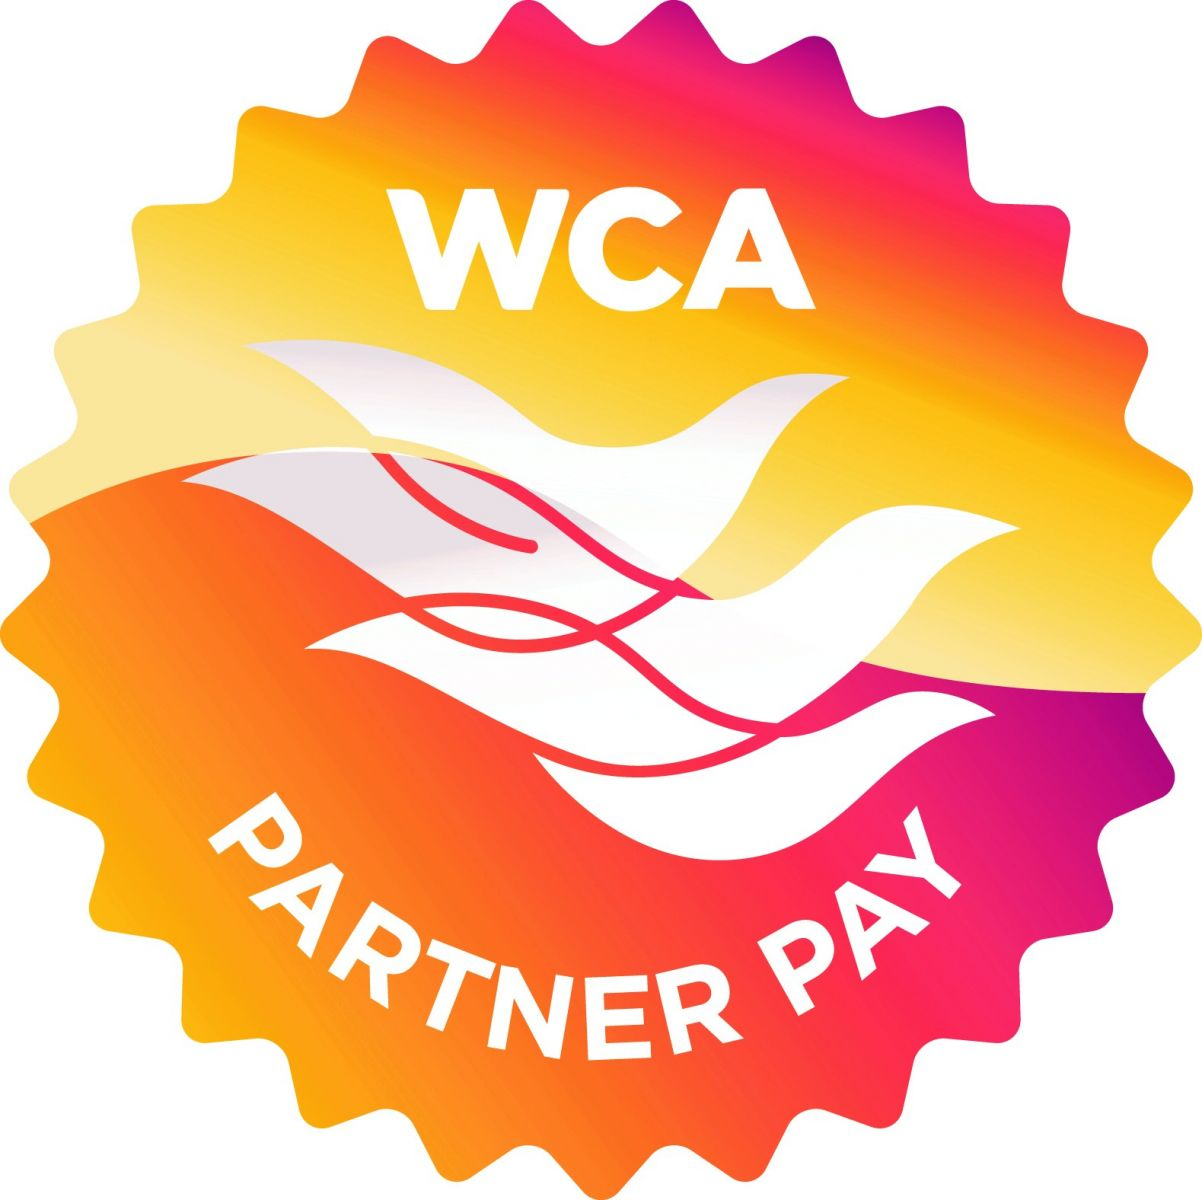 WCA Partner Pay